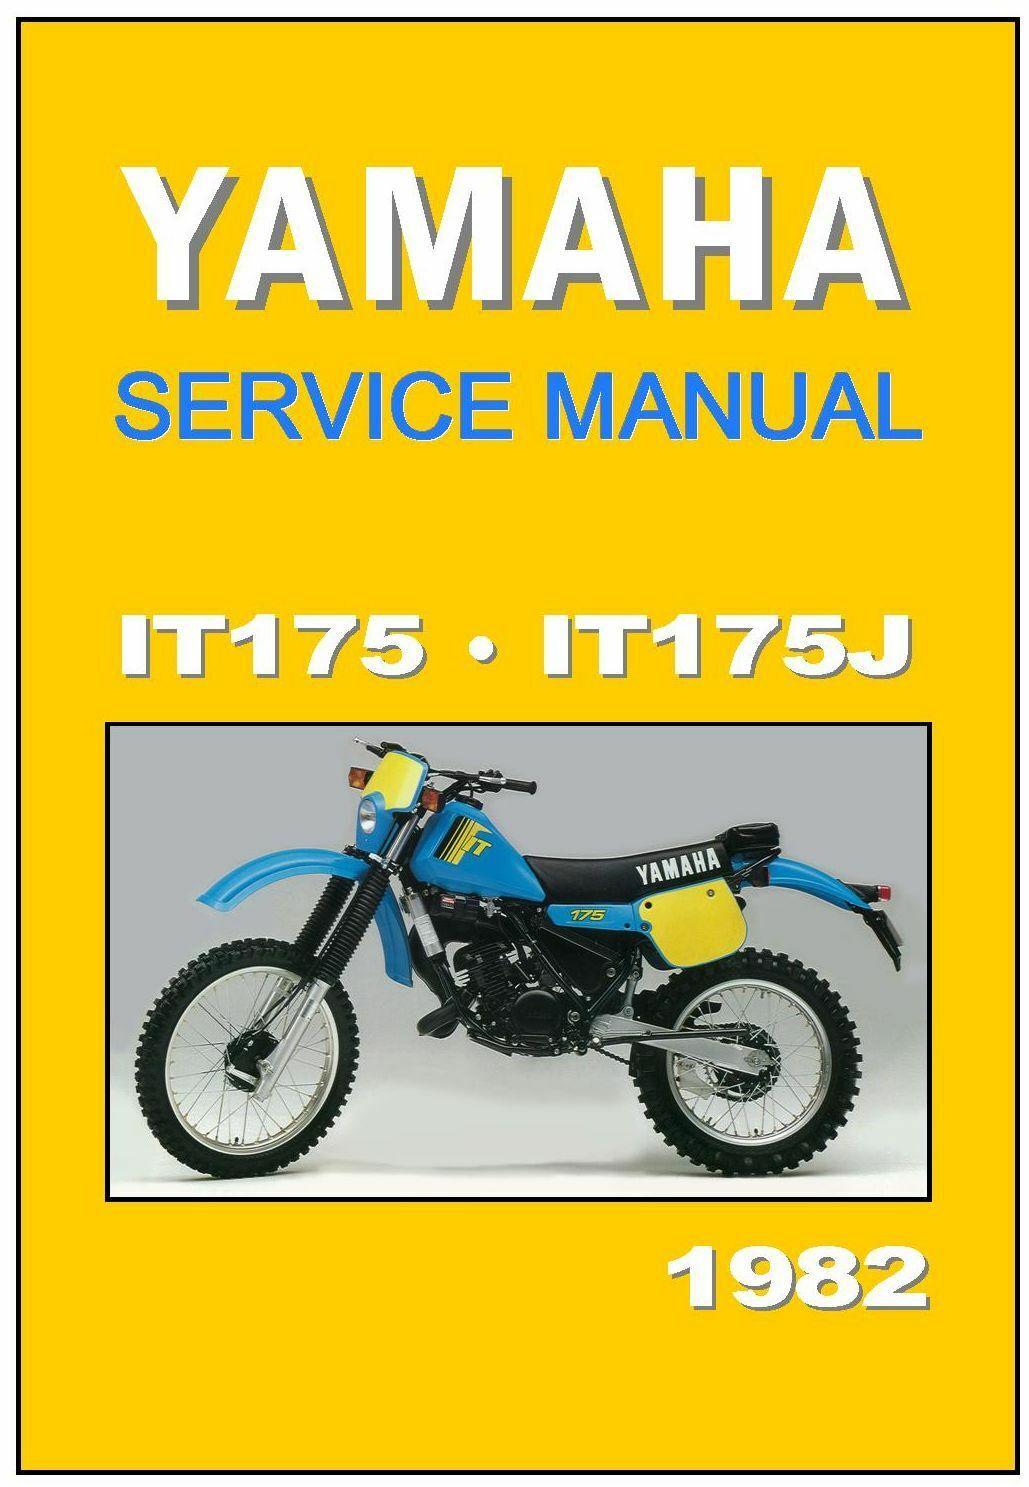 100 1992 Yamaha Dt200 Manual – It175 Wiring Diagram